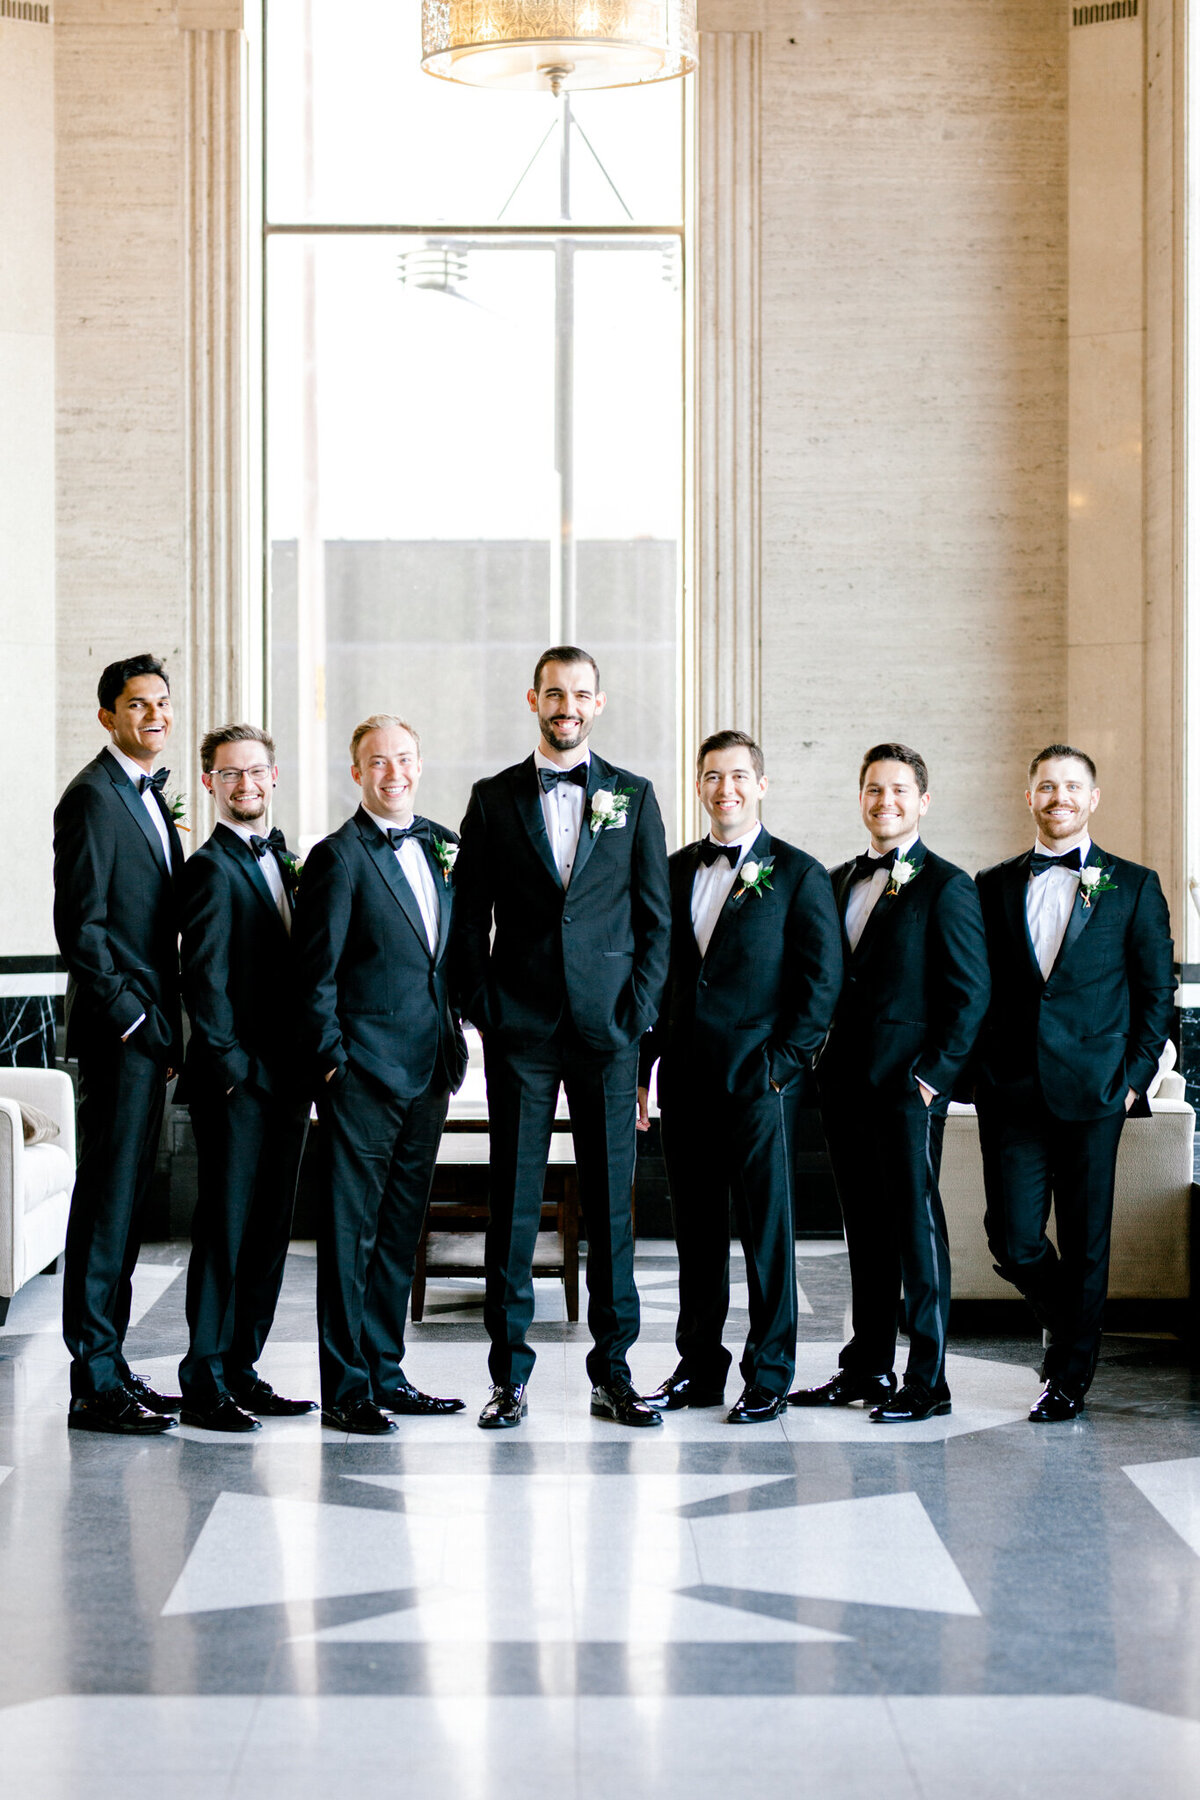 Hope & Zack's Wedding at the Carlisle Room | Dallas Wedding Photographer | Sami Kathryn Photography-43